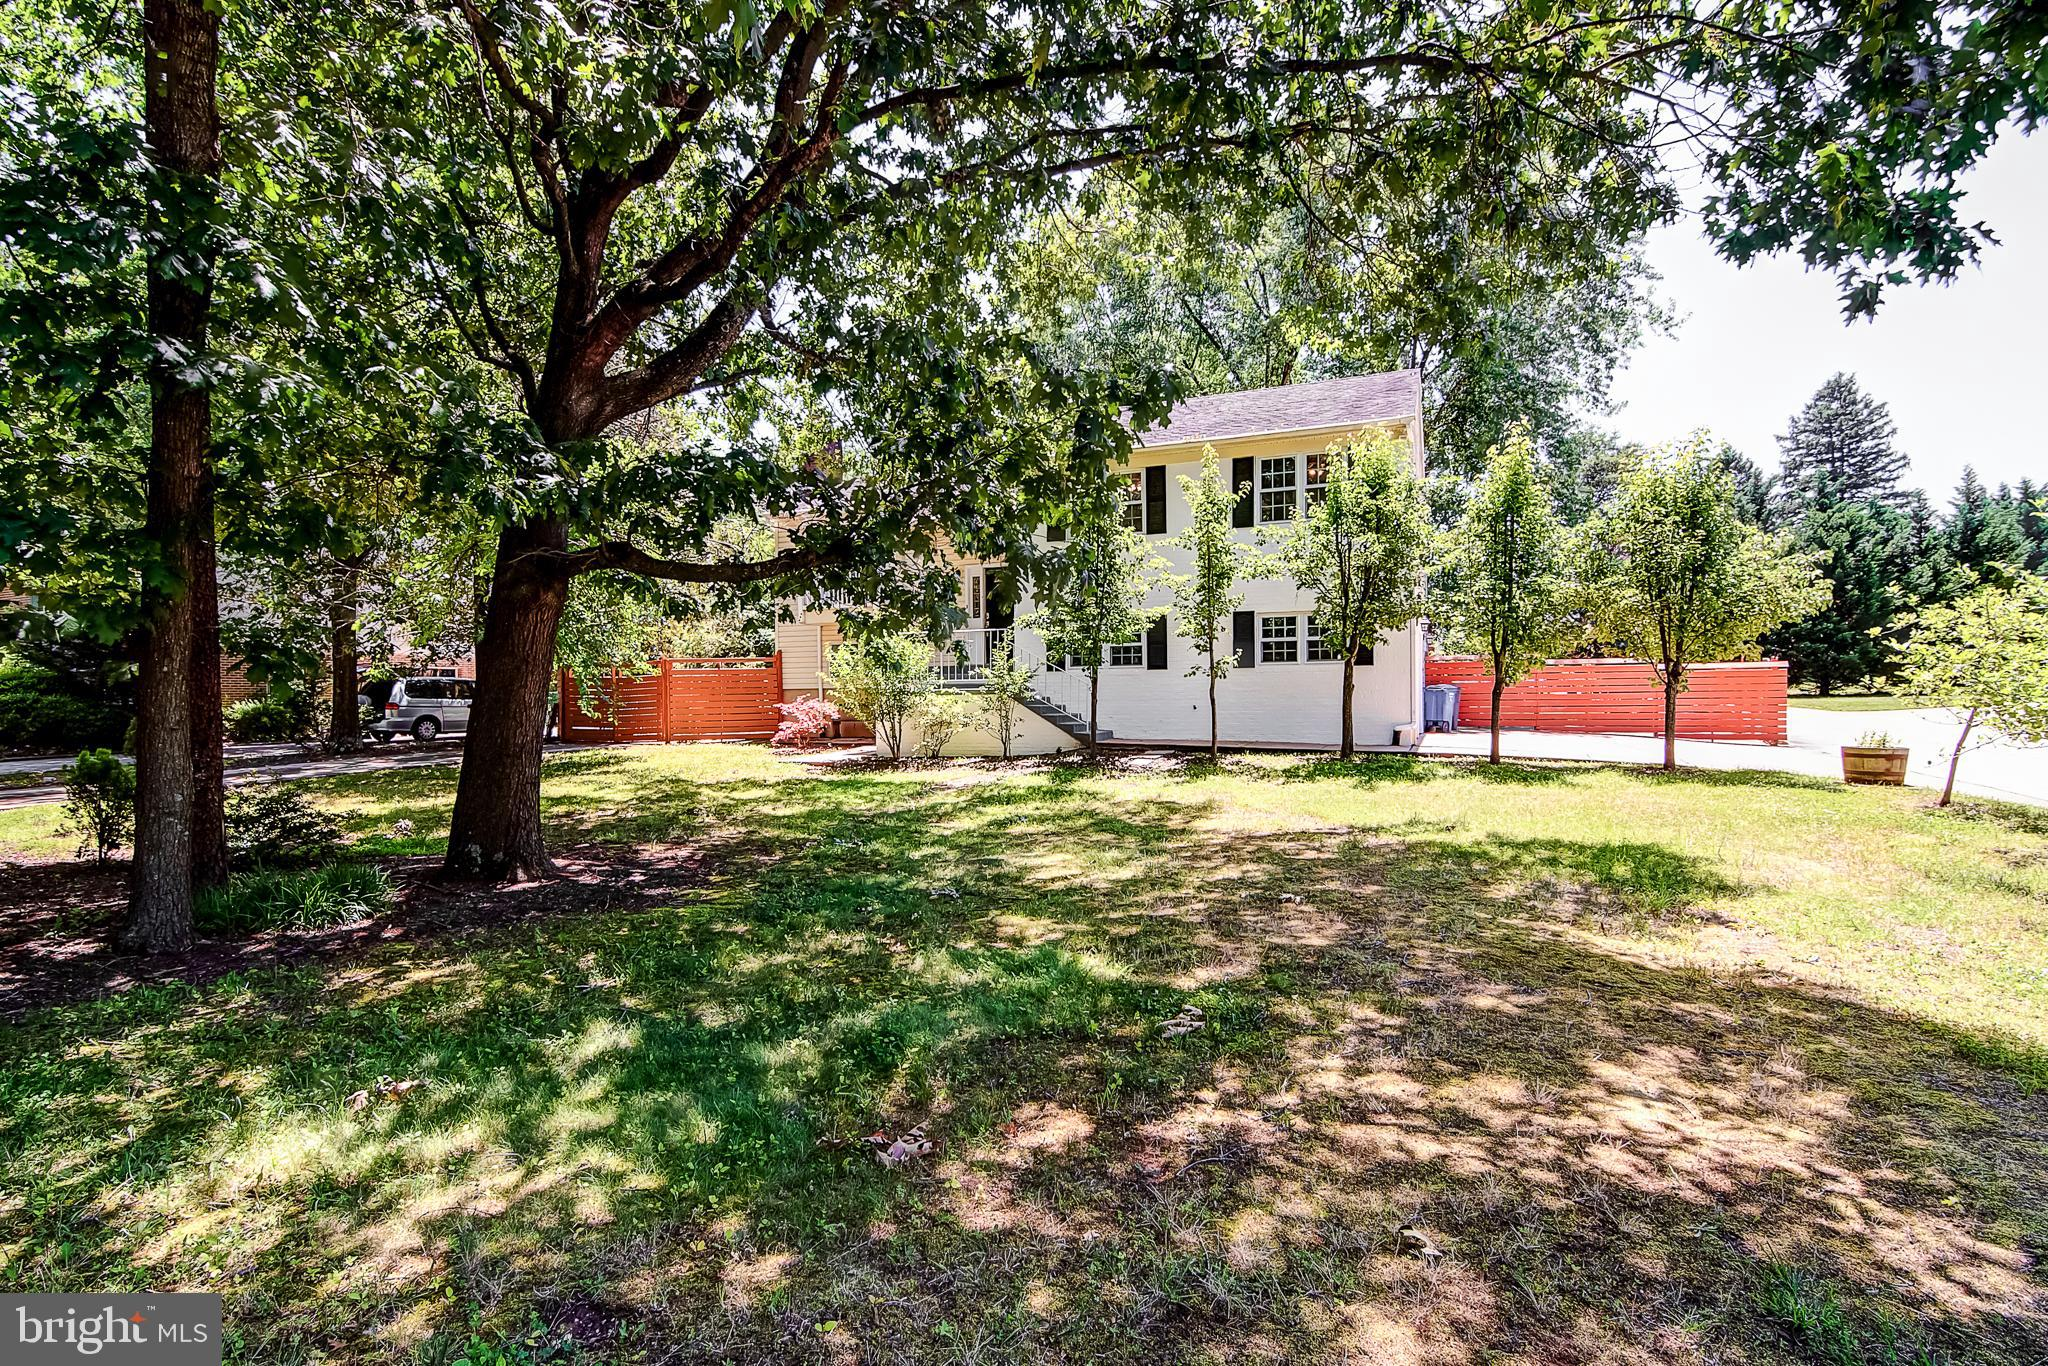 If you are looking for a beautifully renovated house,   you do not want to miss seeing this one! This warm and inviting home is a large lot and centrally located close to Braddock Rd. and 236. This house has been updated and is ready for you! Master bedroom with deck access and huge walk-in closet. Stunning remodeled master bath. Huge eat-in kitchen with fireplace. Kitchen has been updated with quartz counters, Stainless appliances and beautiful flooring. There is a 3-year contractor warranty on all of the recent updates. The living and dining rooms both access the deck and have lovely wide-plank hardwood floors. There are 2 additional bedrooms on the main level. The lower level has a huge family room and an additional bedroom and full bath. Great location close to TJHSST, shopping dining and major commuter routes. This is one you don't want to miss!